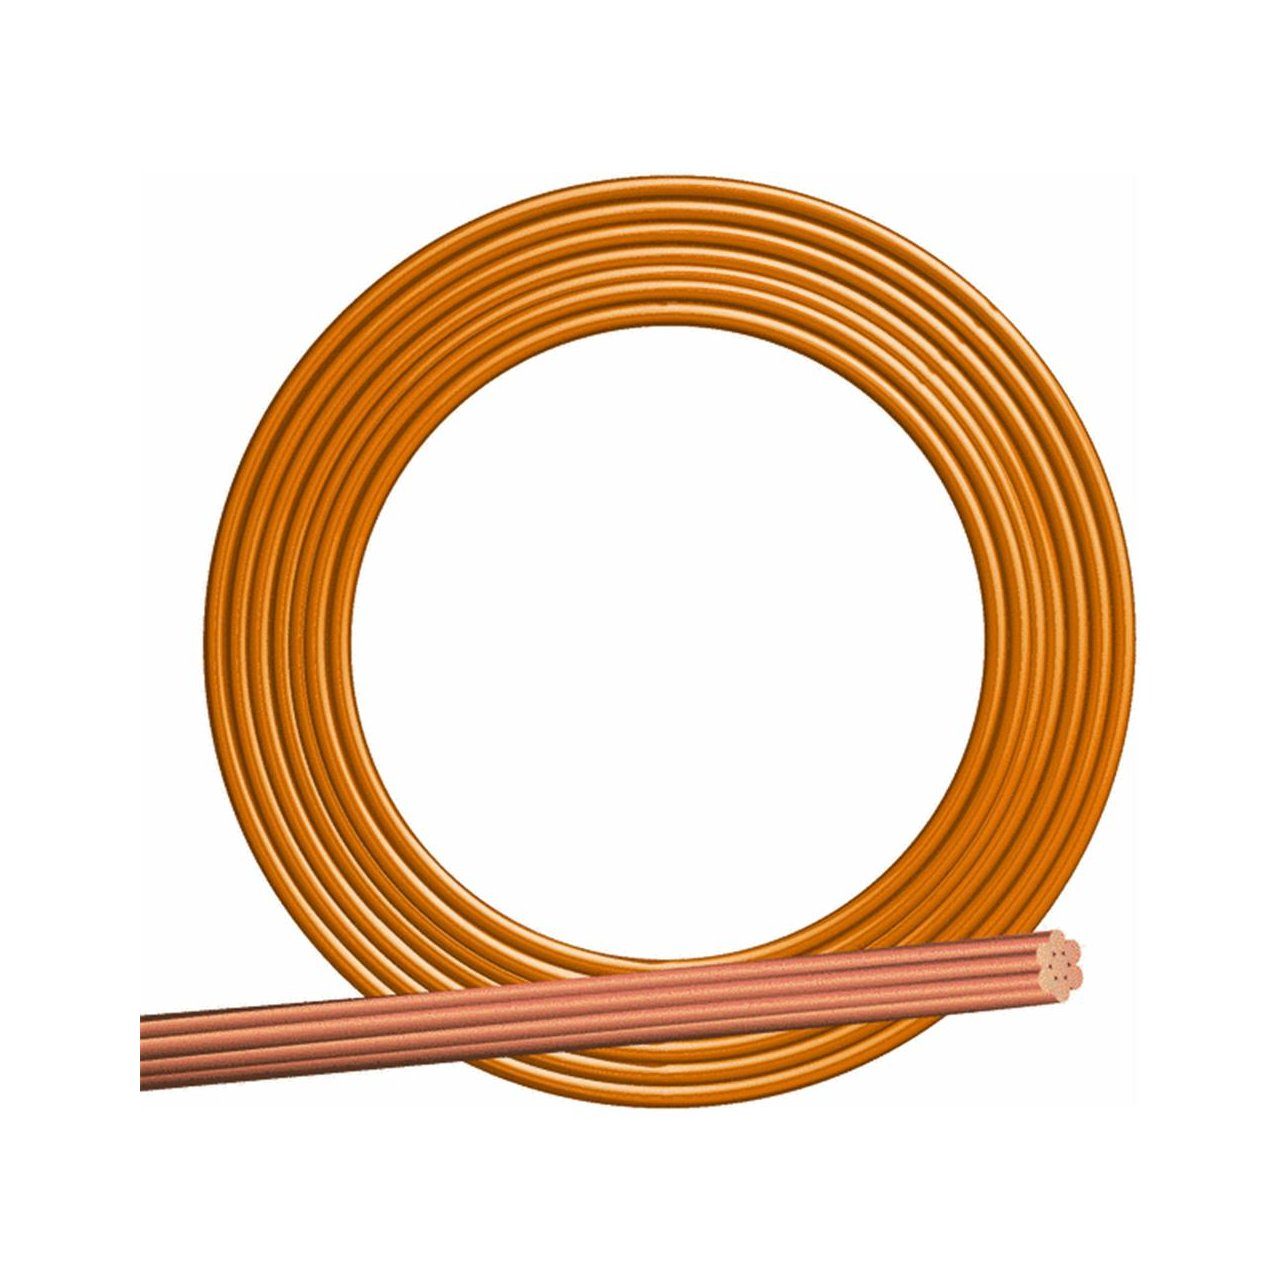 Southwire 10644302 200\' 4 Solid Bare Copper Cable - Electrical Wires ...